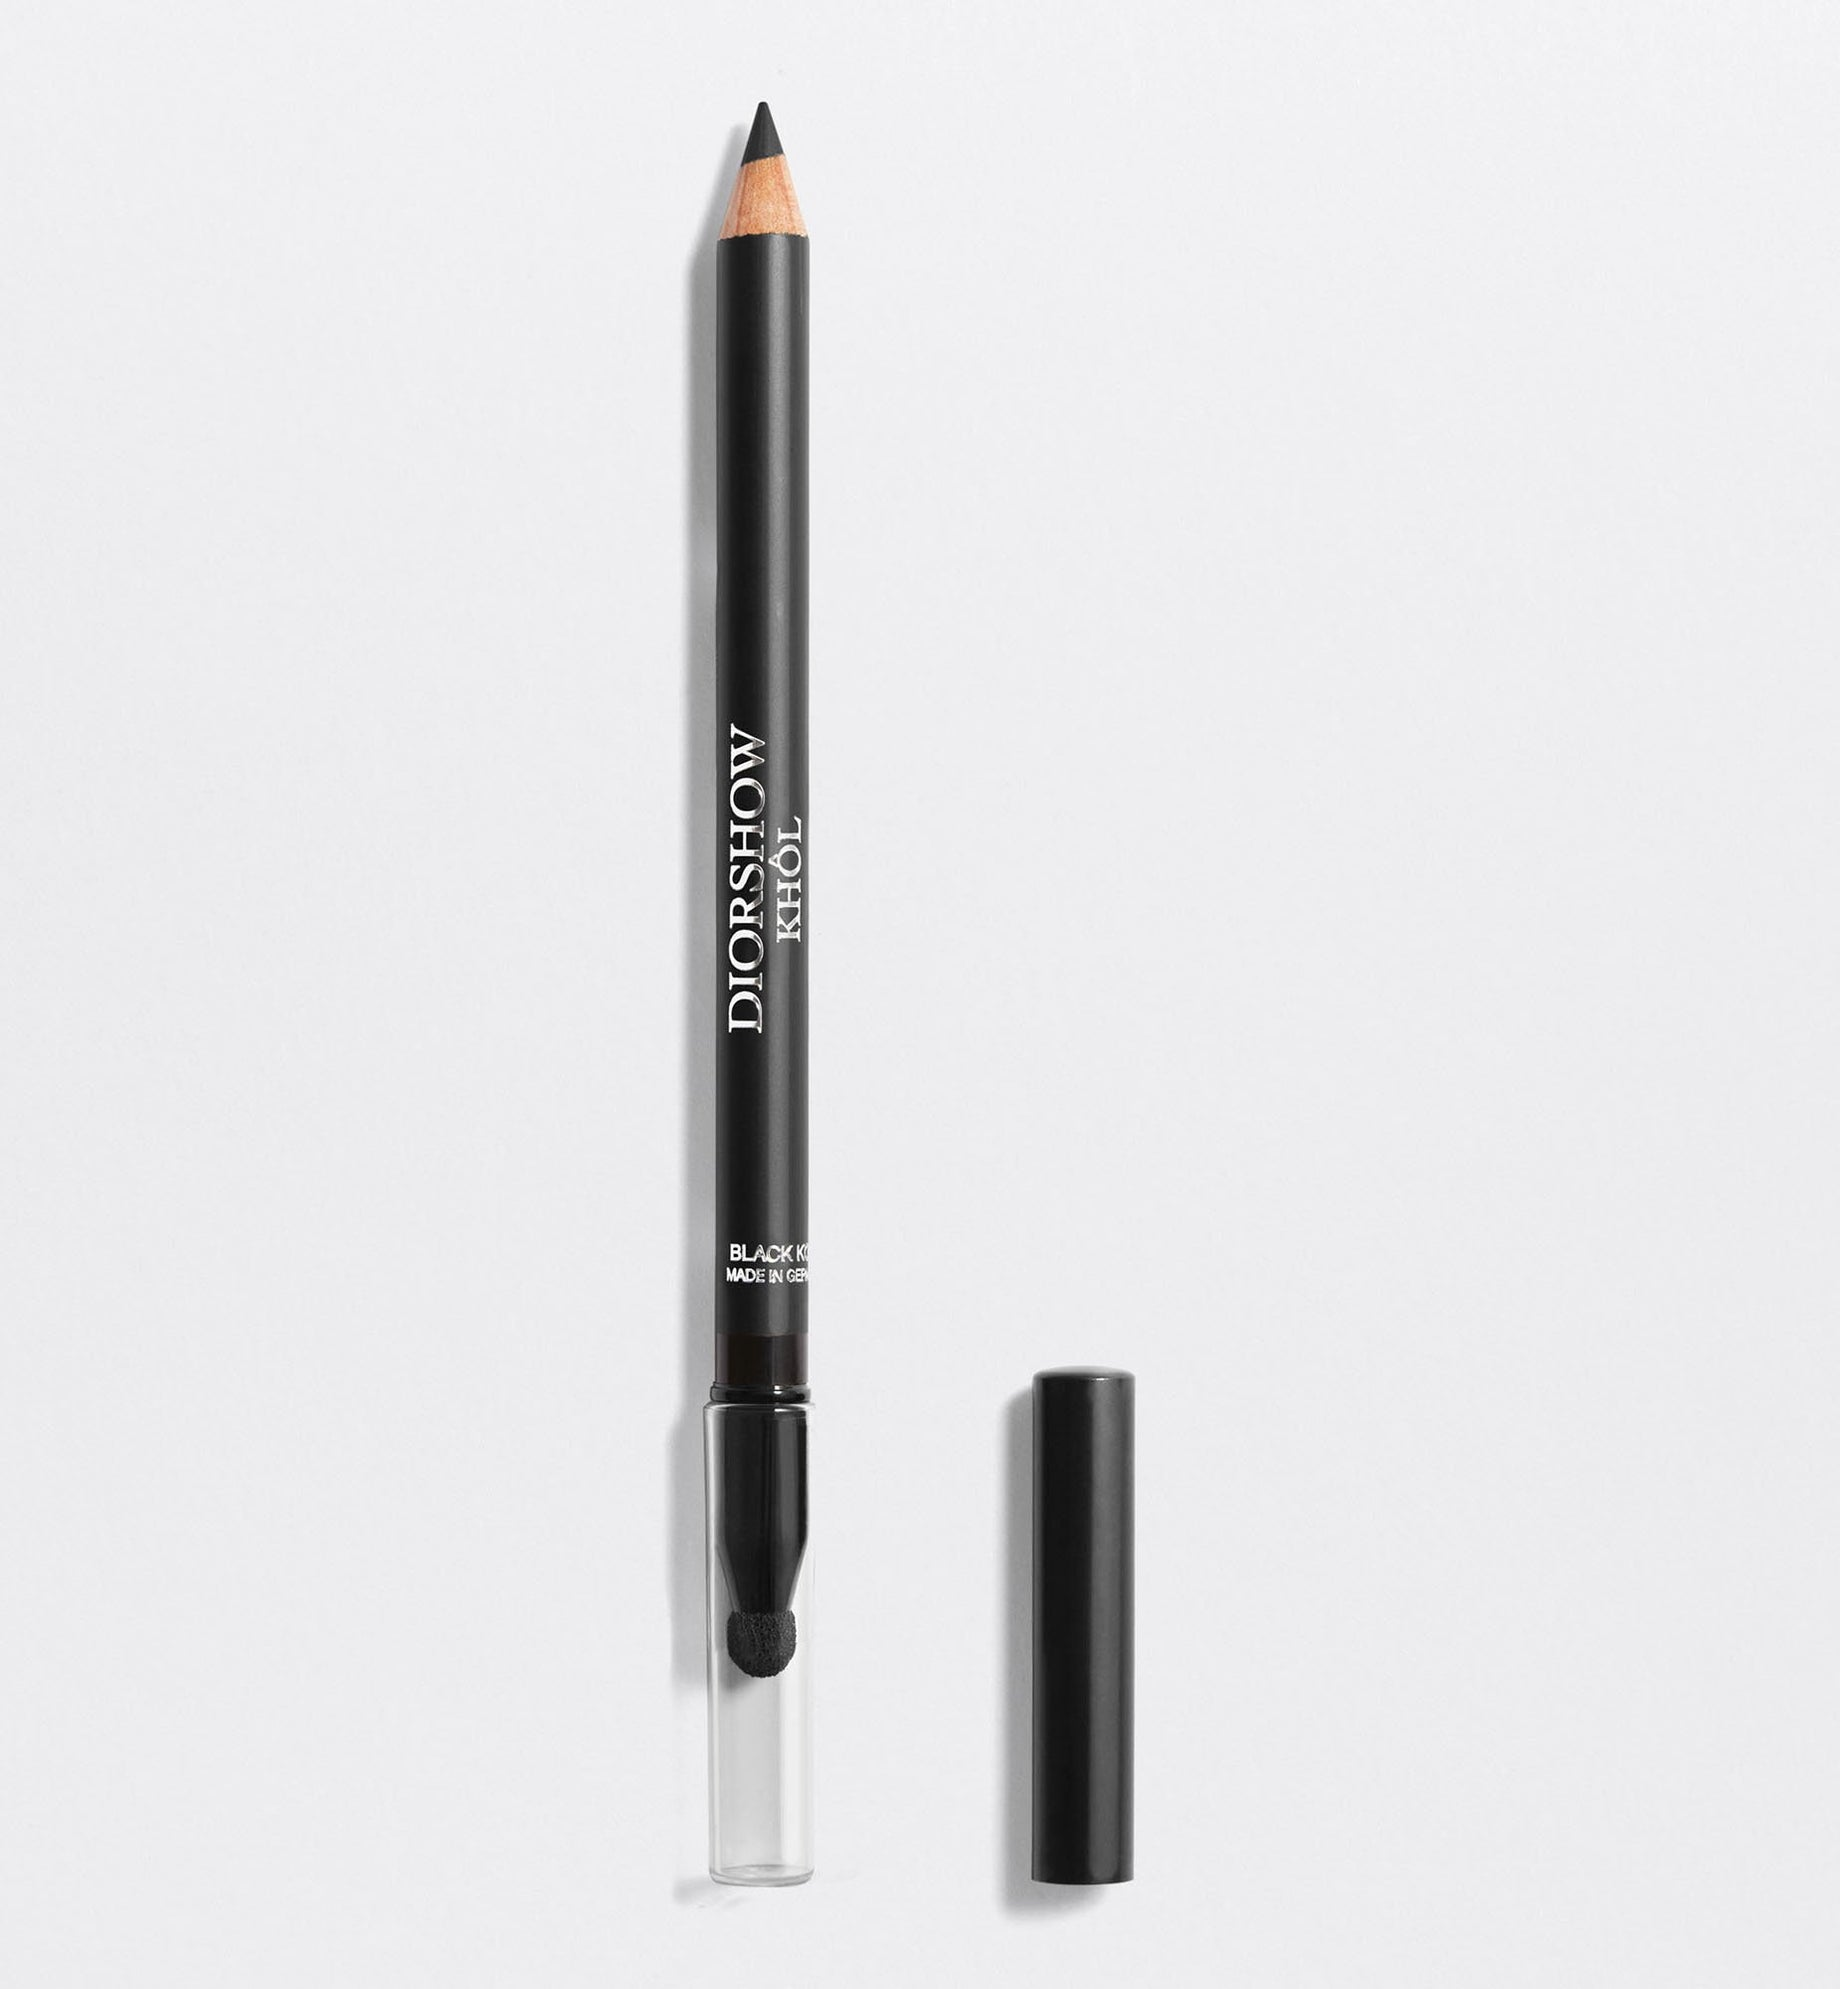 DIORSHOW KHÔL HIGH INTENSITY PENCIL WATERPROOF